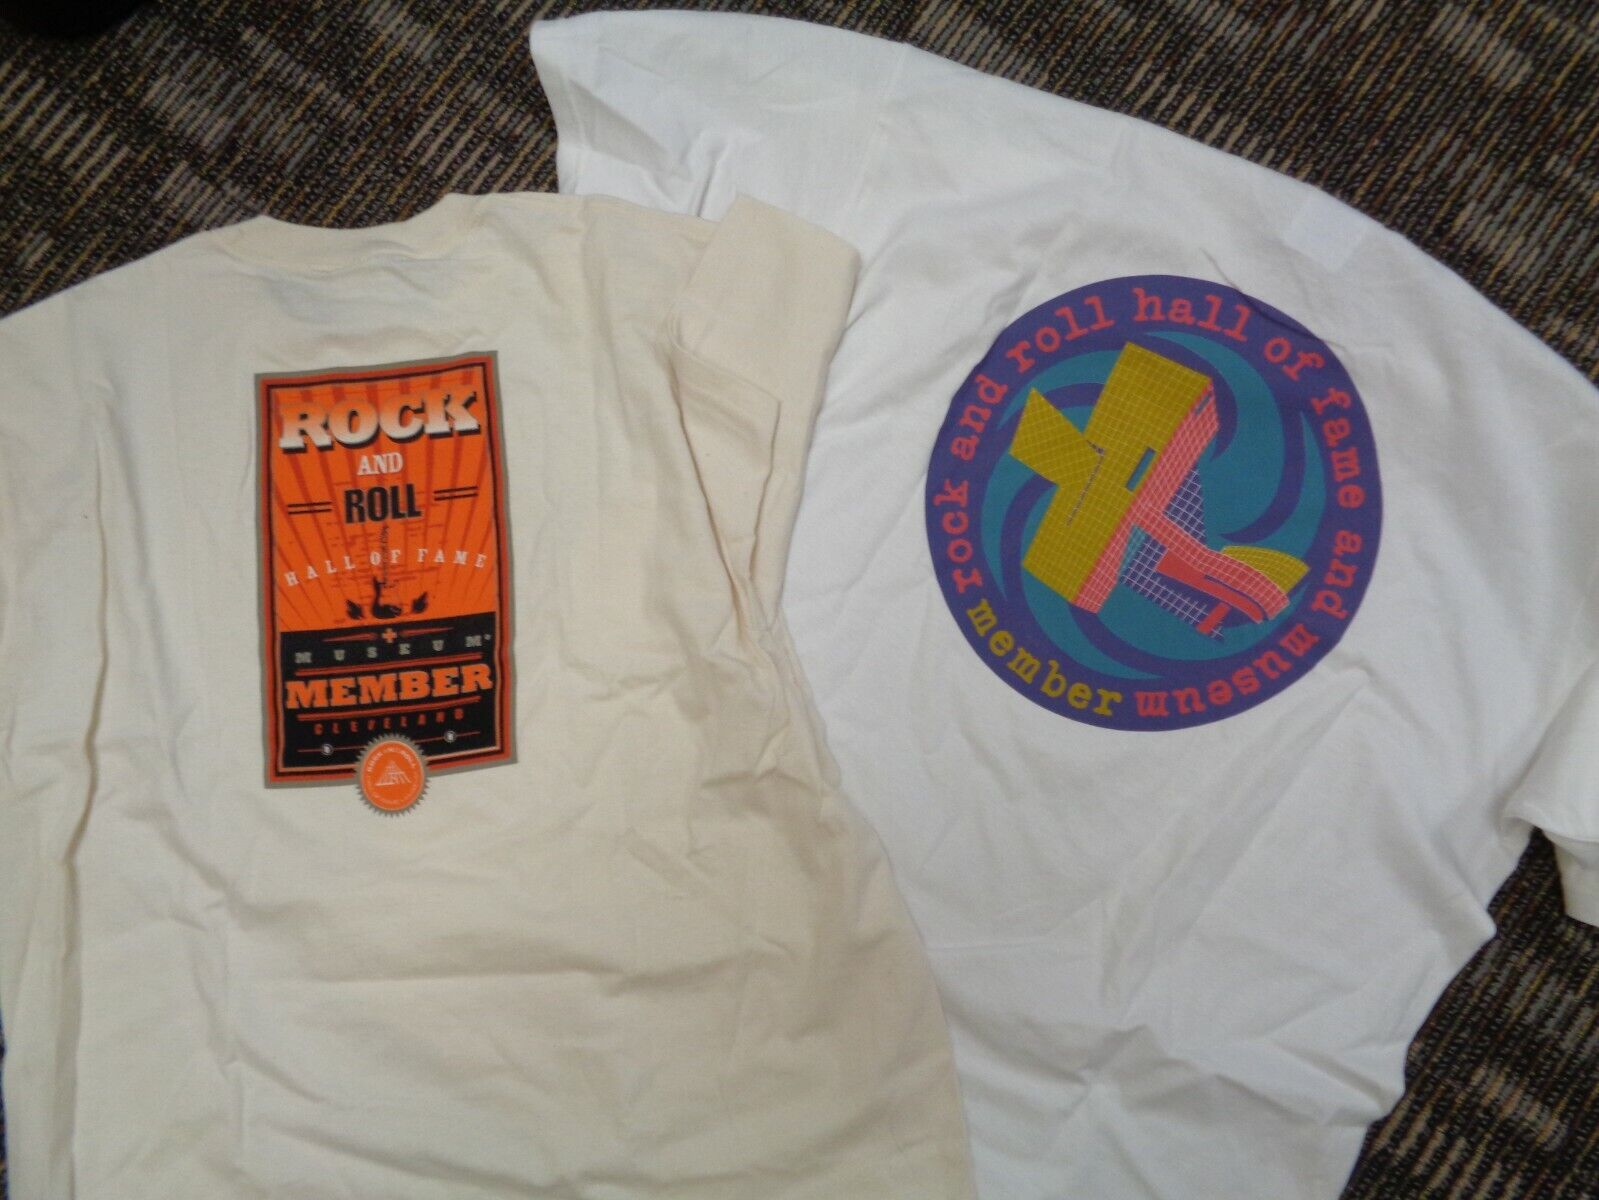 LOT 6-ROCK ROLL HALL OF FAME MUSIC MUSEUM CLEVELAND OHIO MEMBER ADULT T-SHIRTS - $19.99